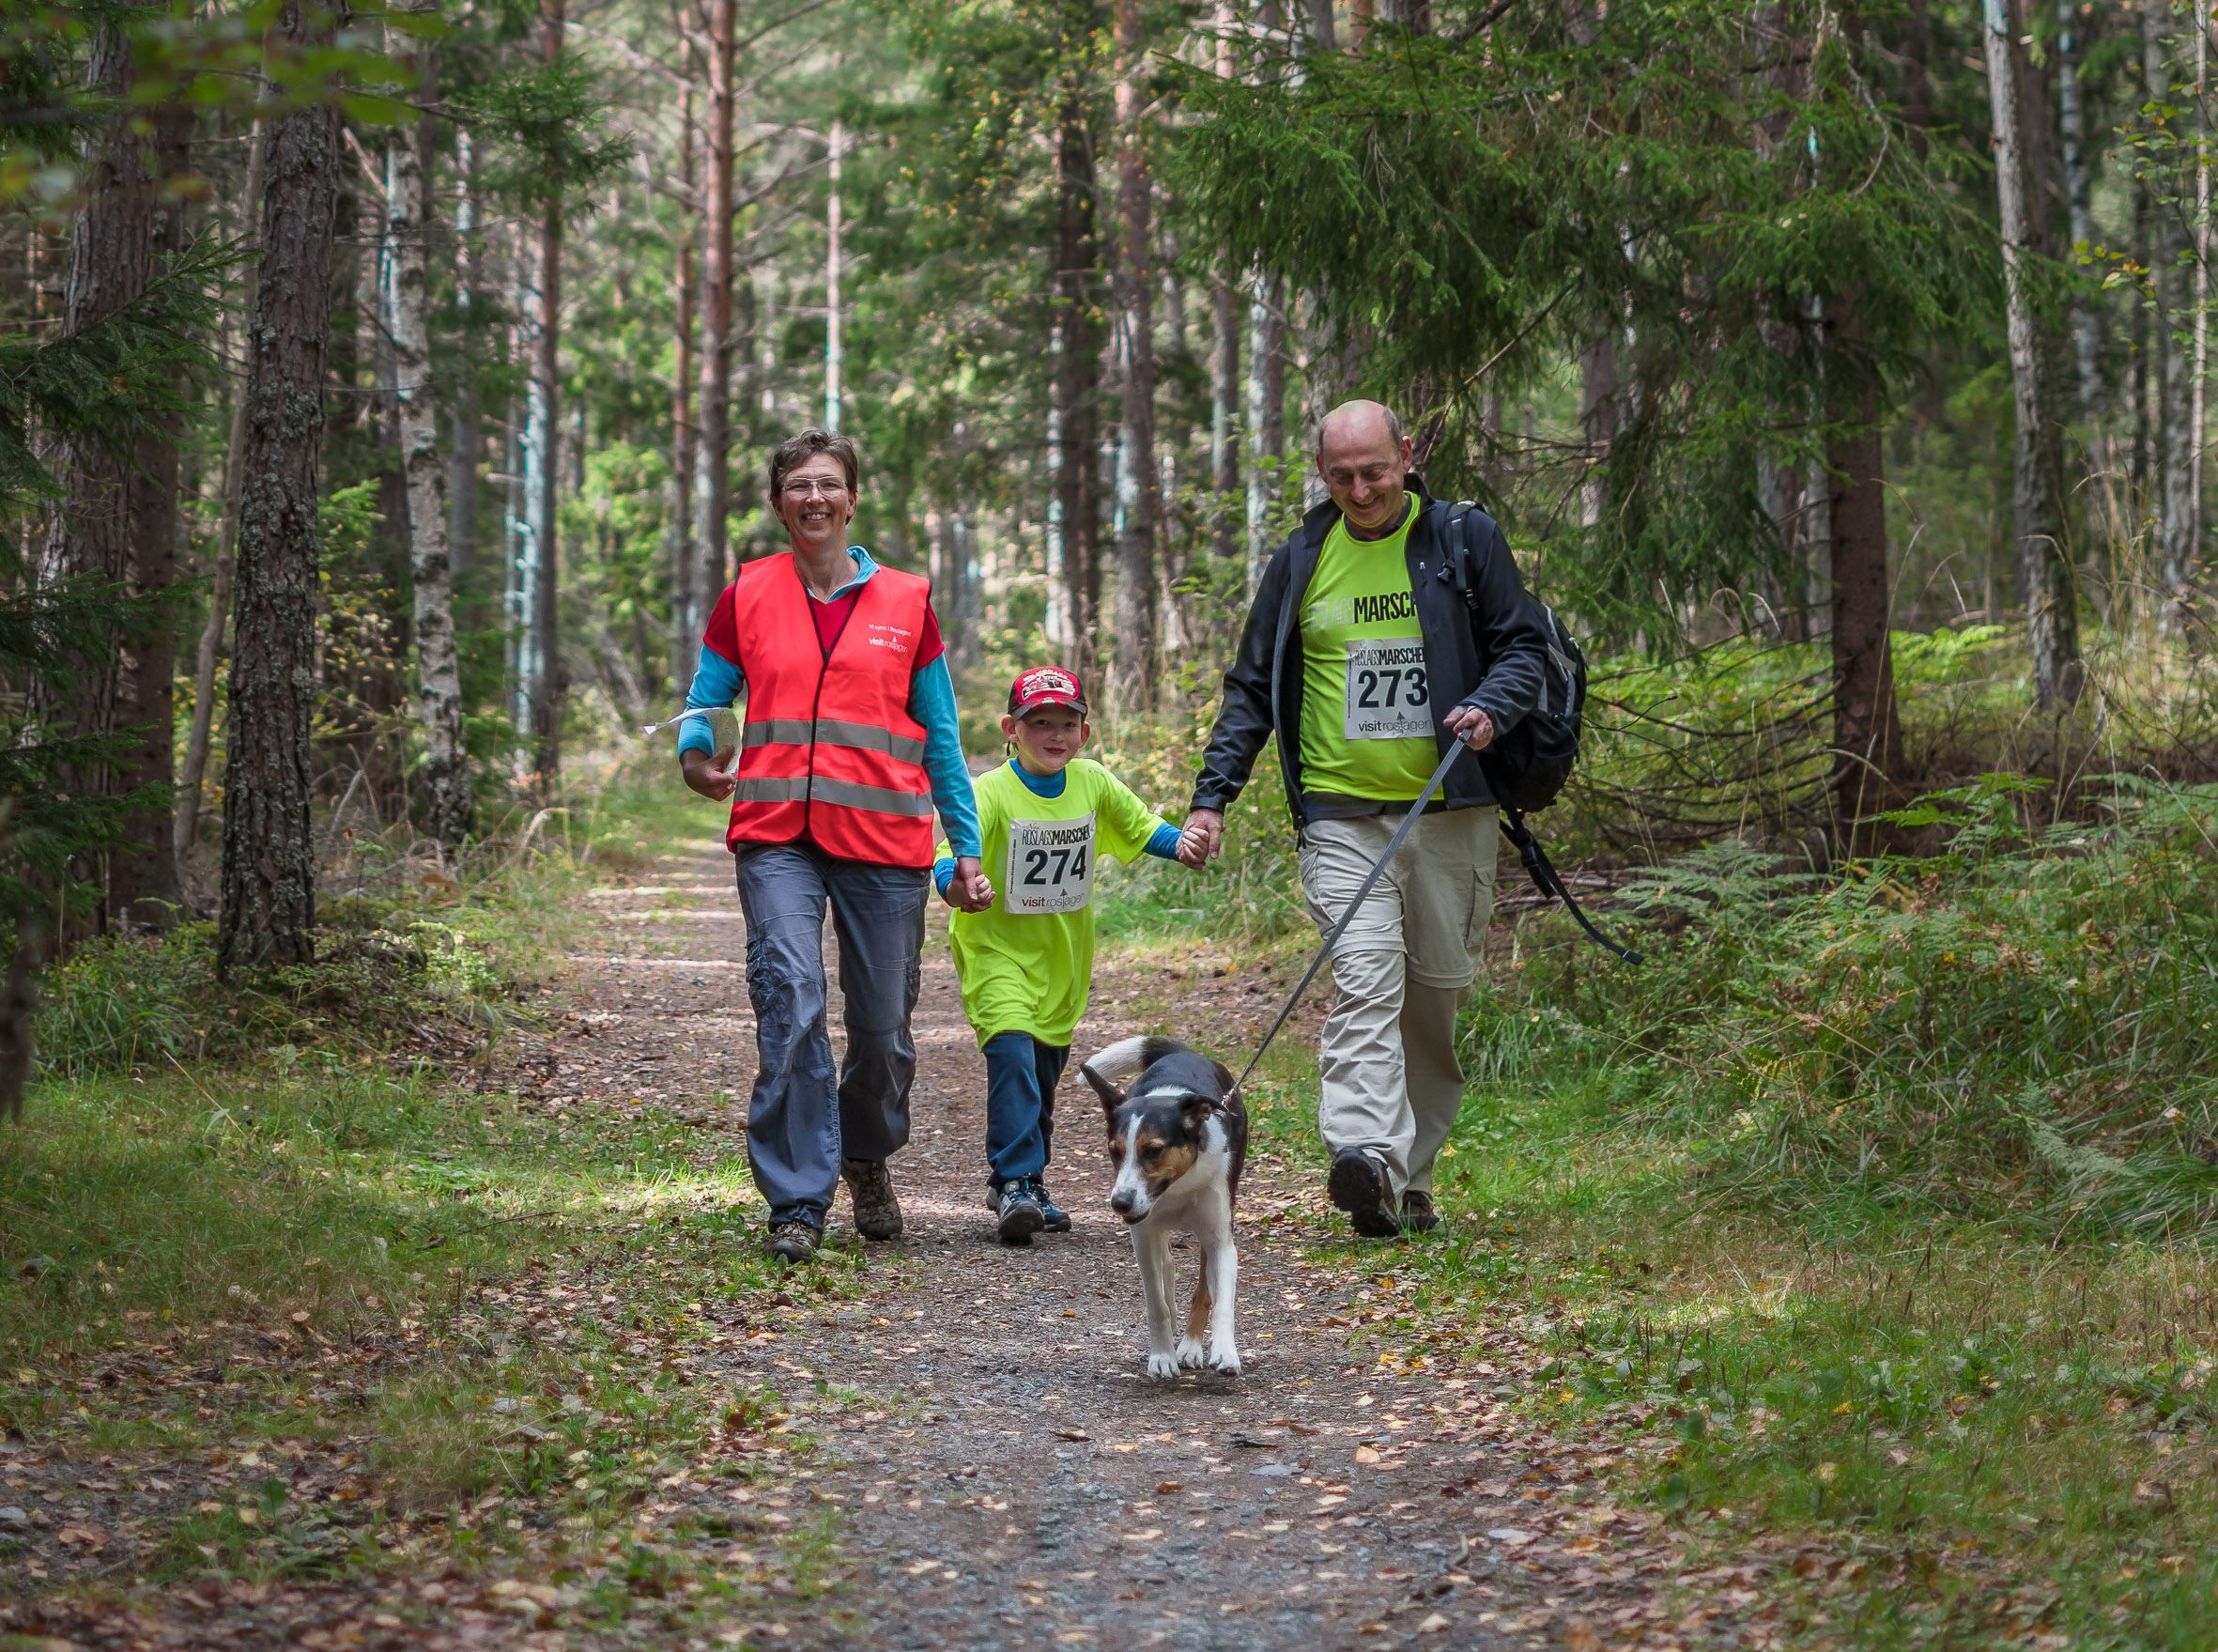 Nya Roslagsmarschen - Hike on the Roslagsleden Trail - 17 th of September